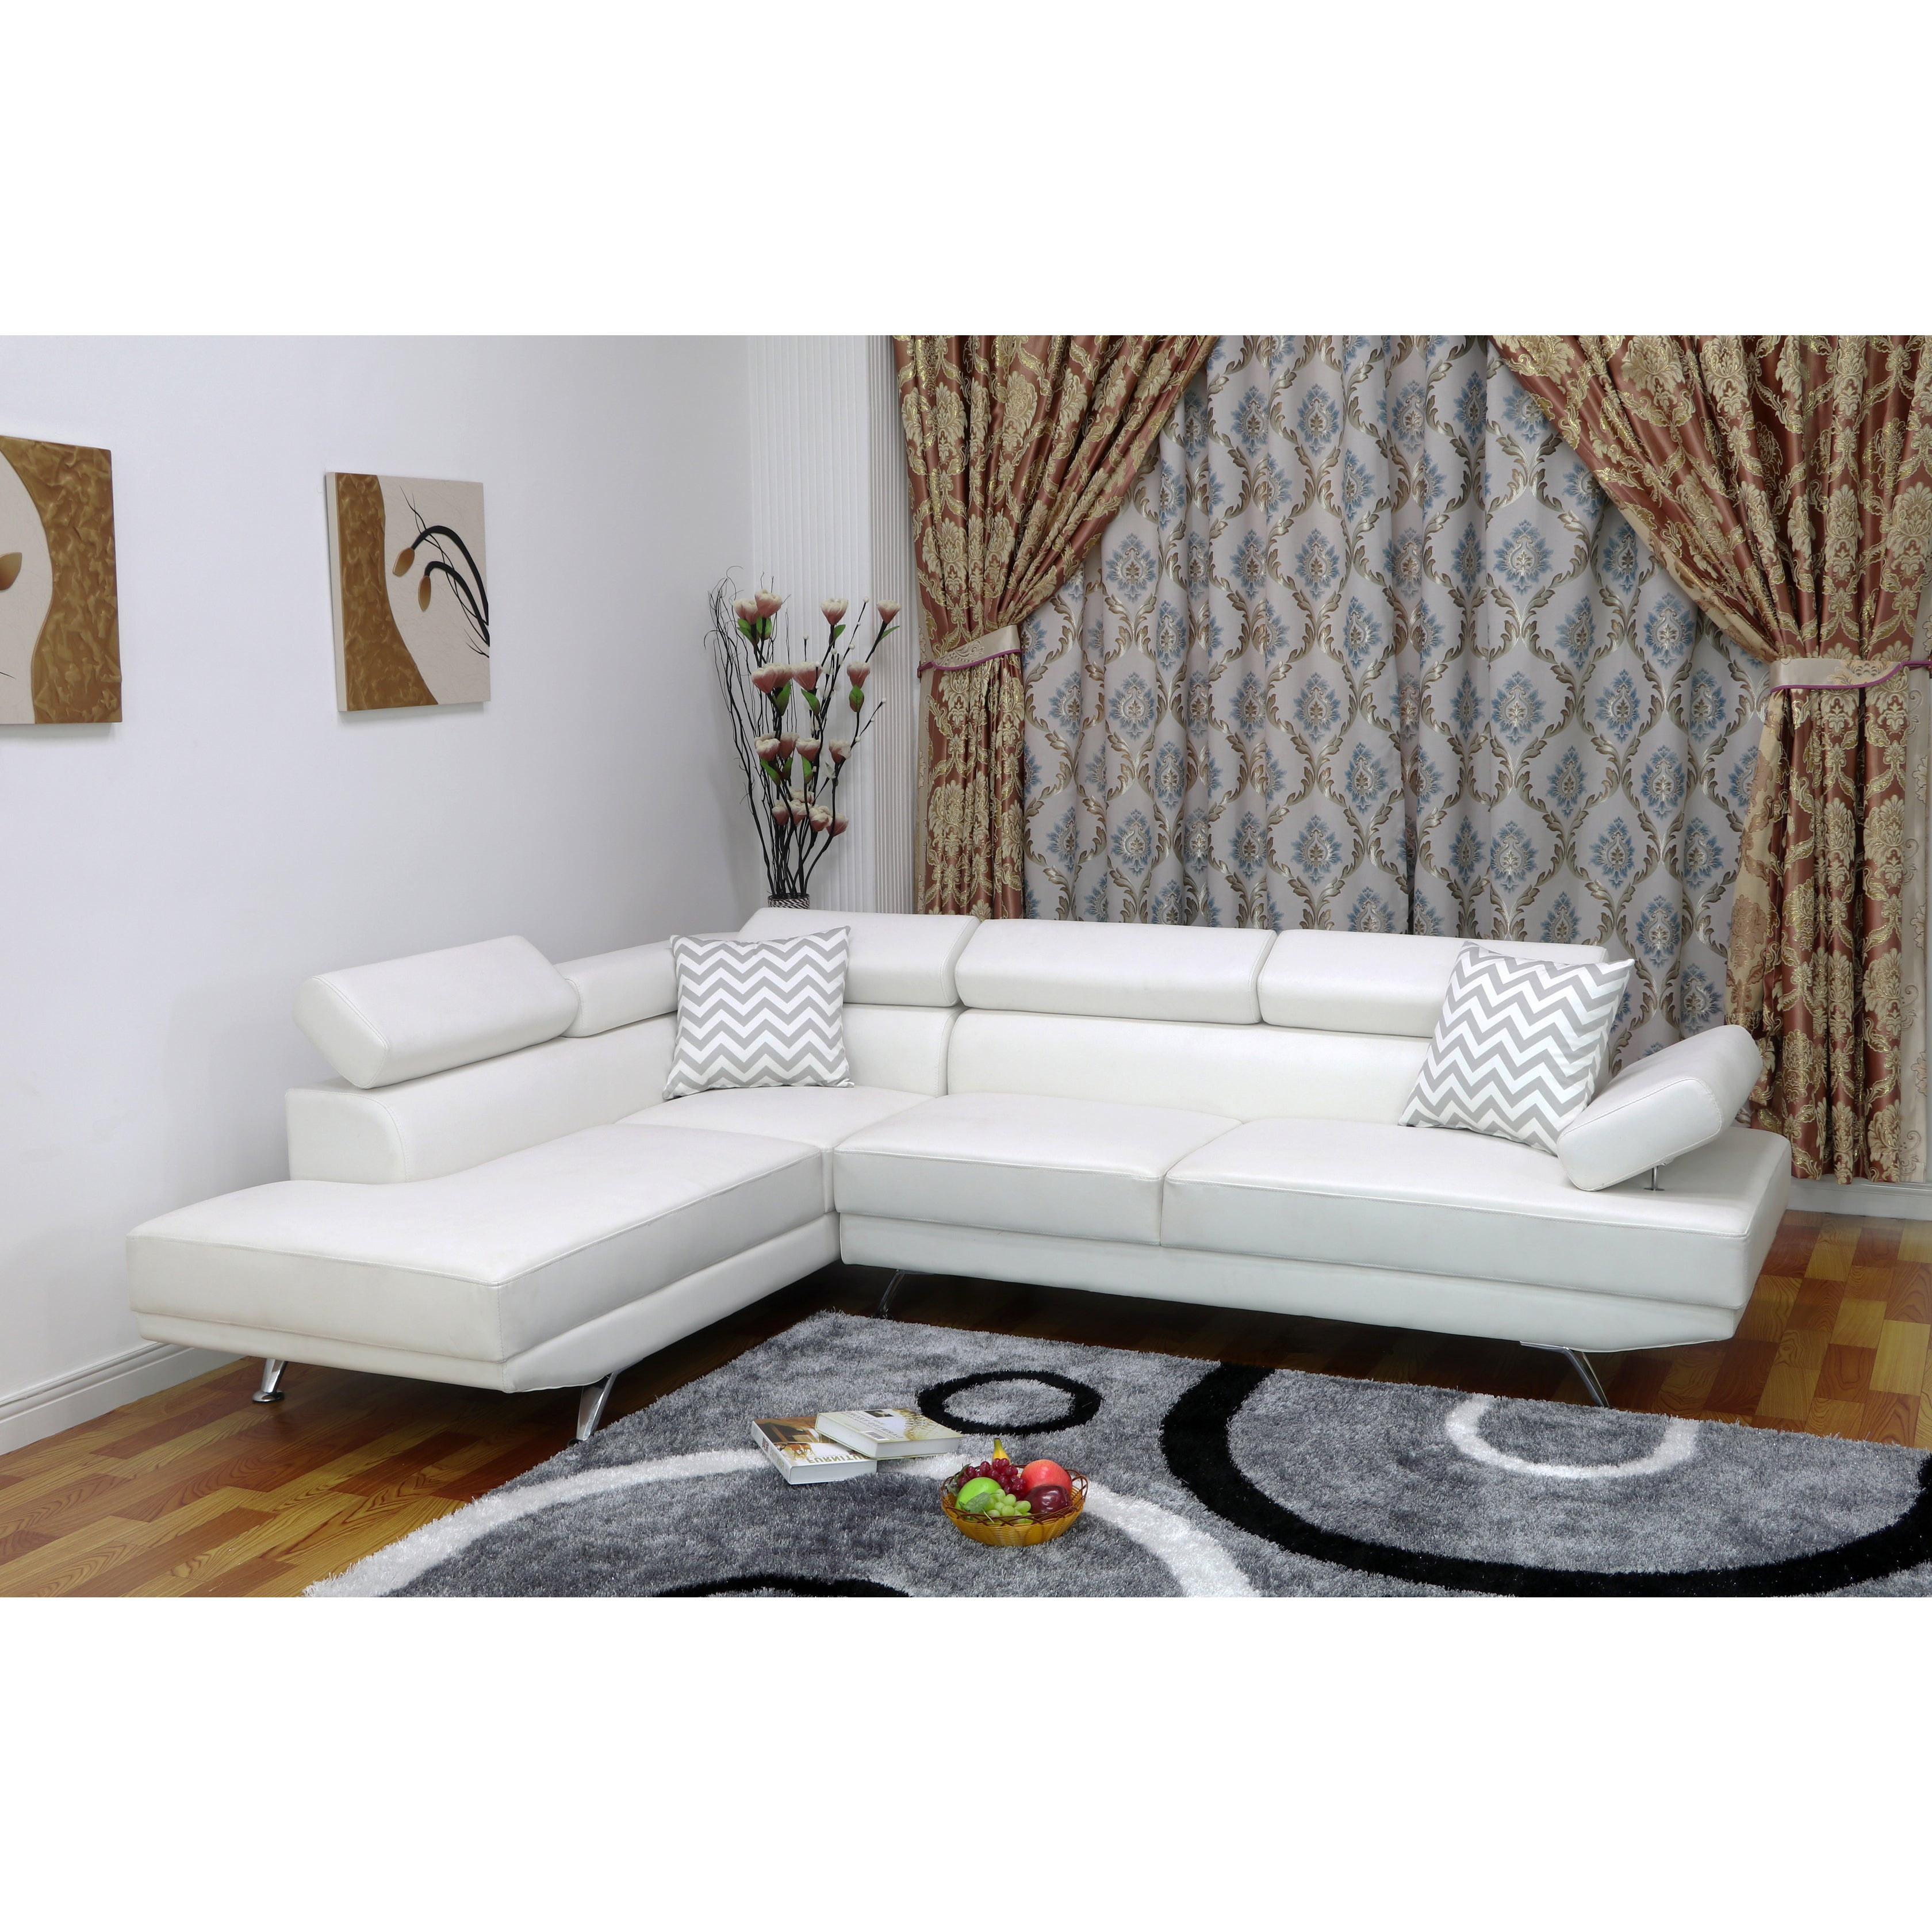 Whitley Modern Faux Leather Left-Facing Chaise Sectional Sofa   eBay